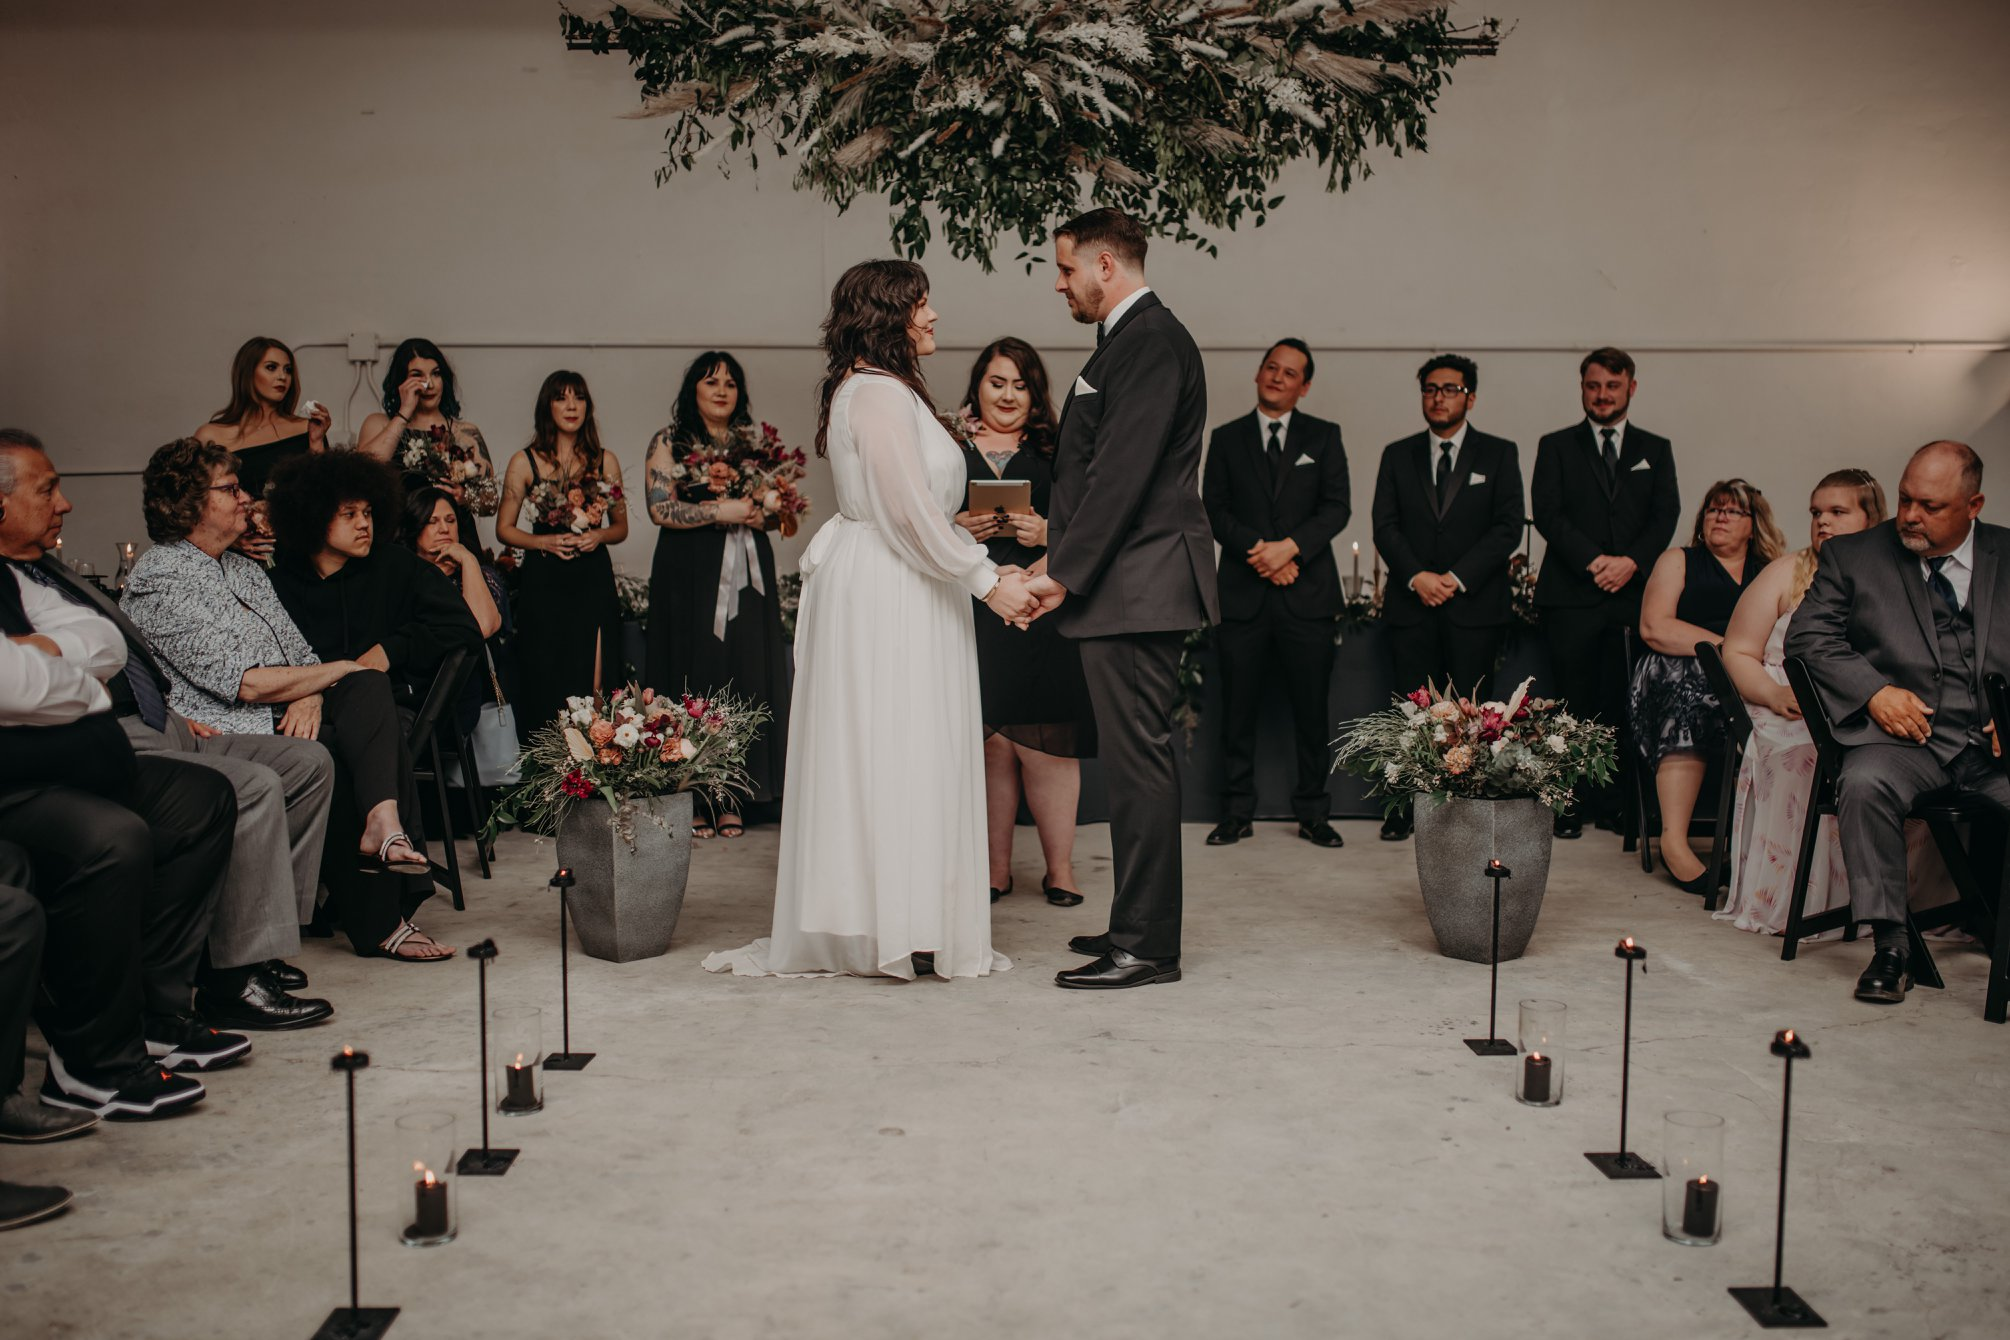 Moody Industrial Wedding Ceremony